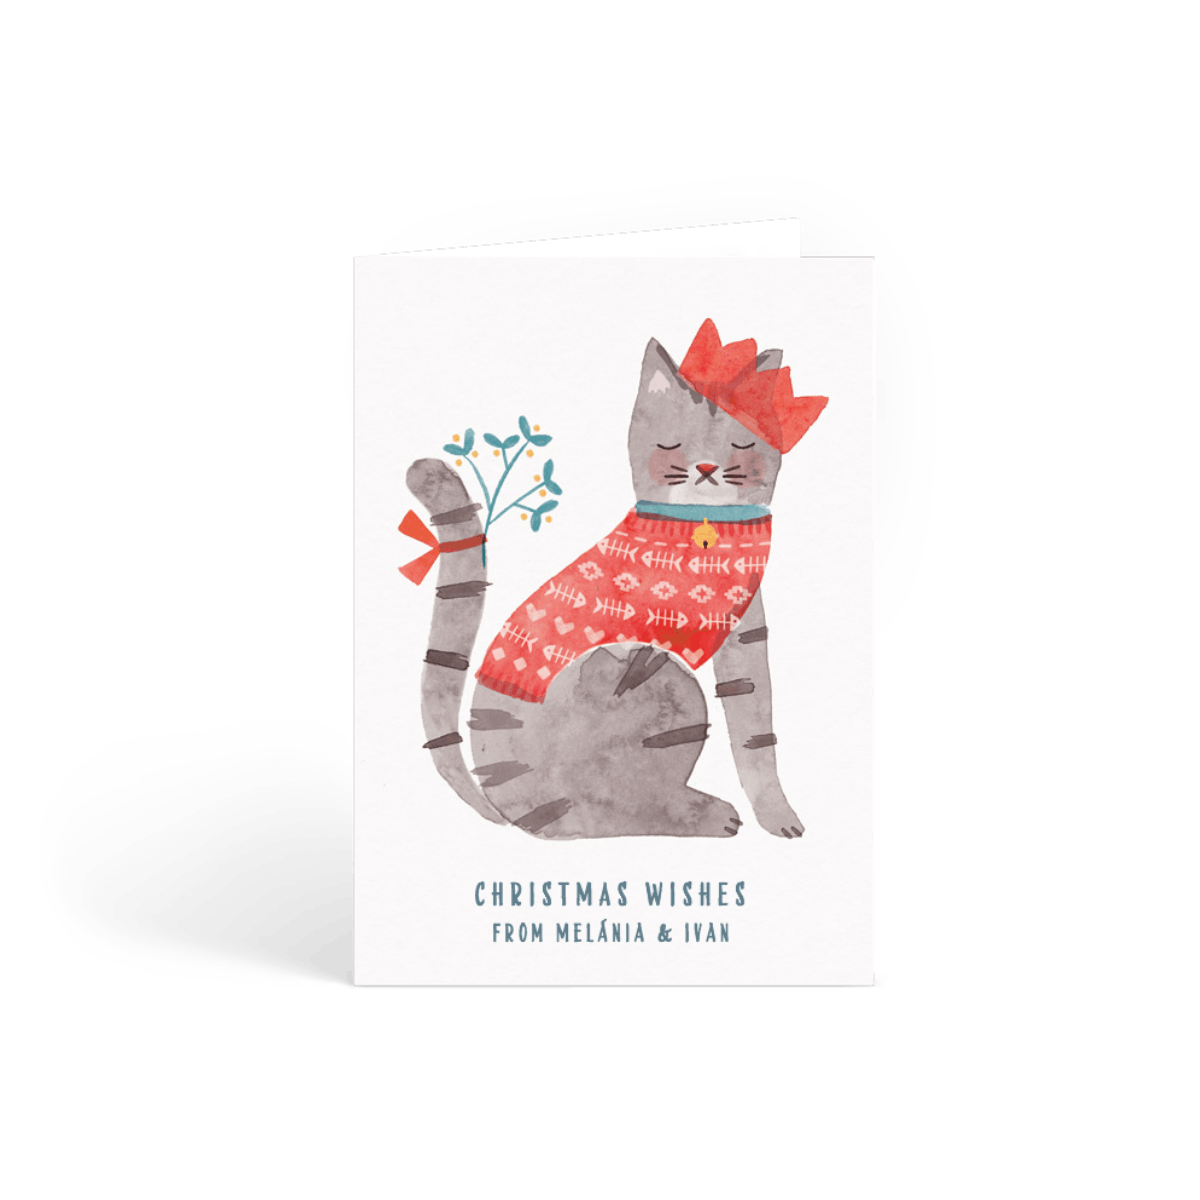 Https%3a%2f%2fwww.papier.com%2fproduct image%2f28912%2f2%2fchristmas cat 7262 front 1543938755.png?ixlib=rb 1.1